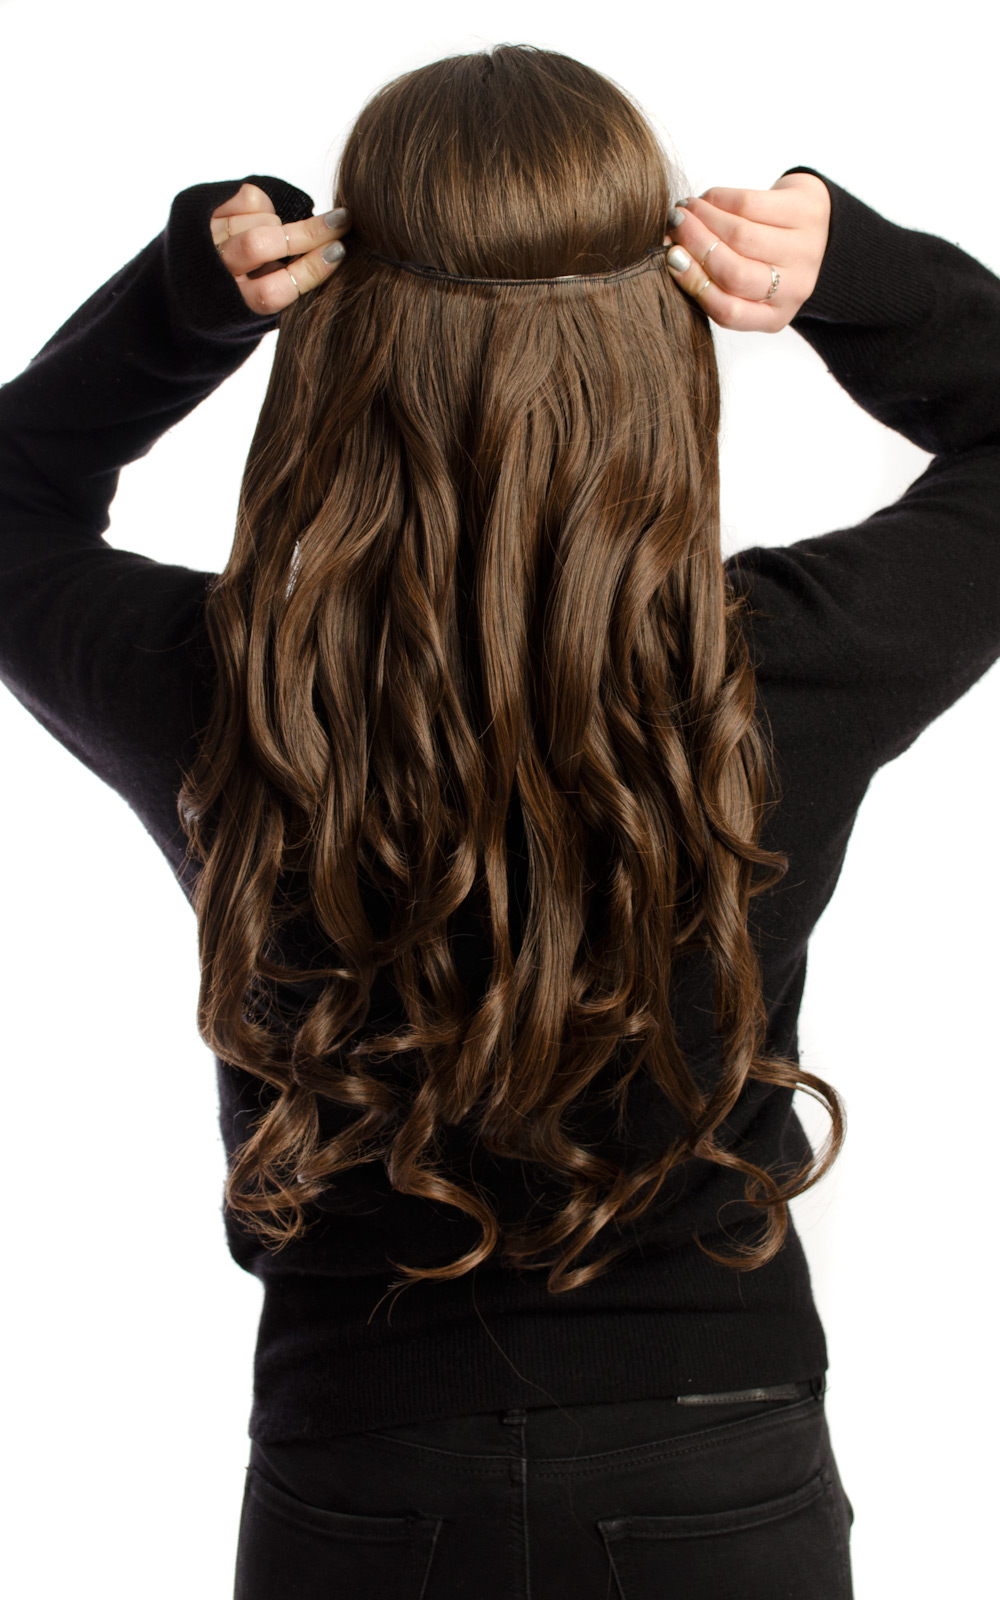 IKRUSH-Women-039-s-Intense-Volume-Clip-In-Hair-Extensions-Curly-in-BRUNETTE